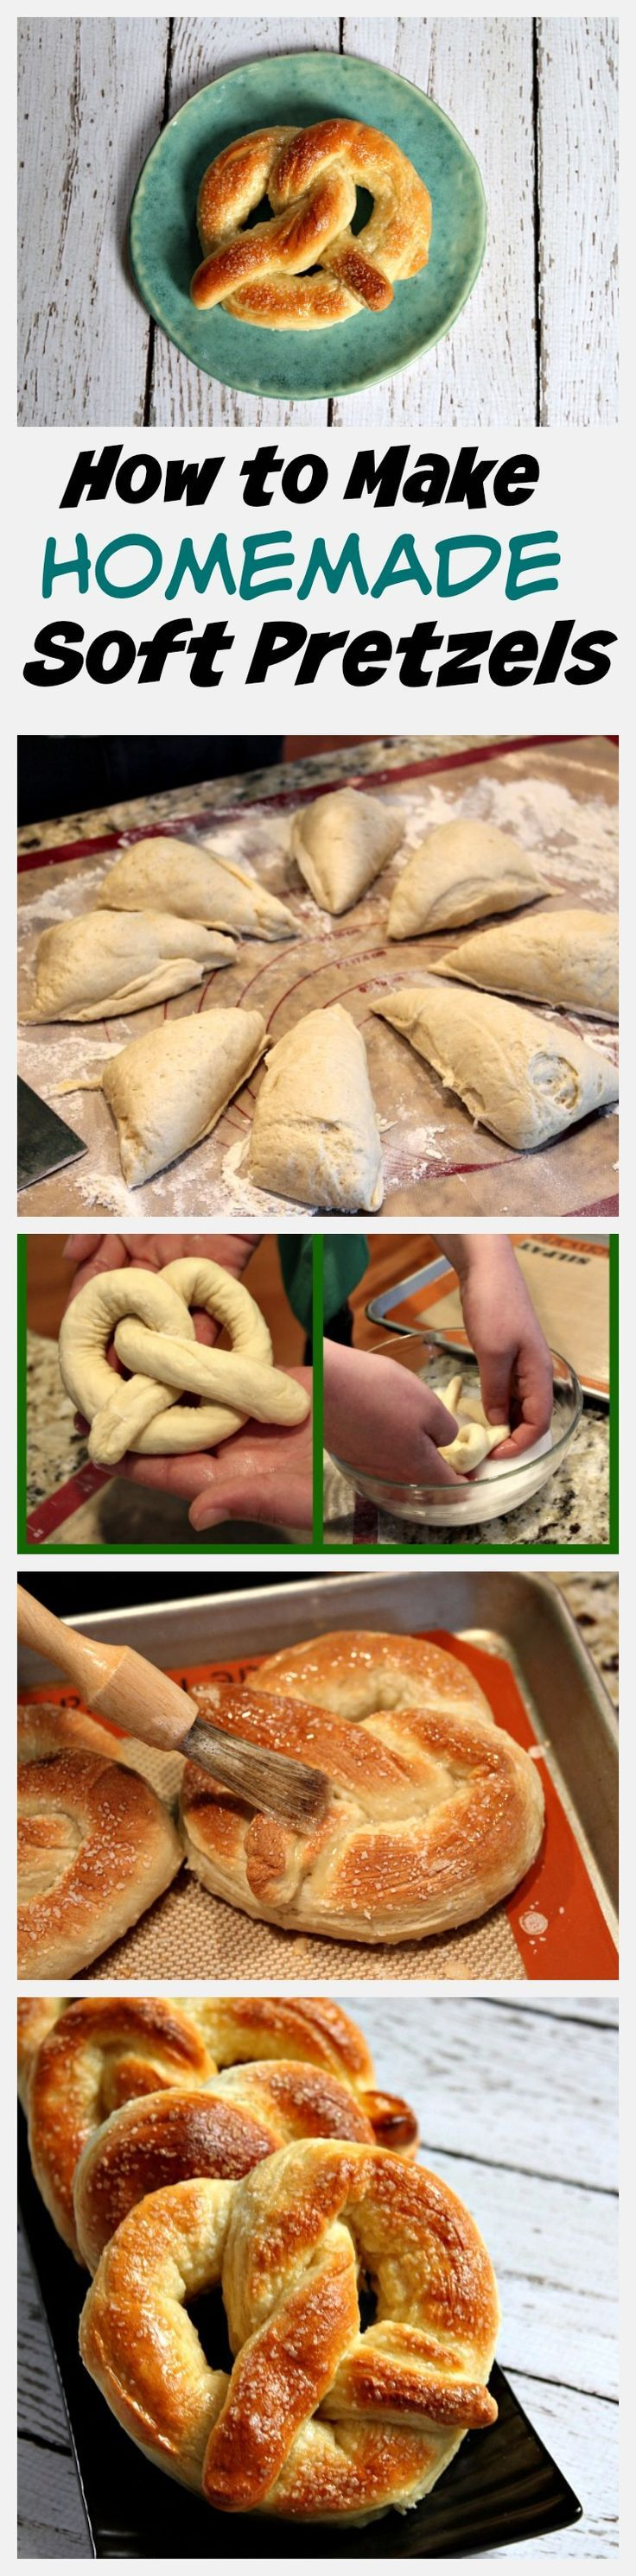 How to Make Homemade Soft Pretzels - easy, step-by-step #recipe and photo tutorial.